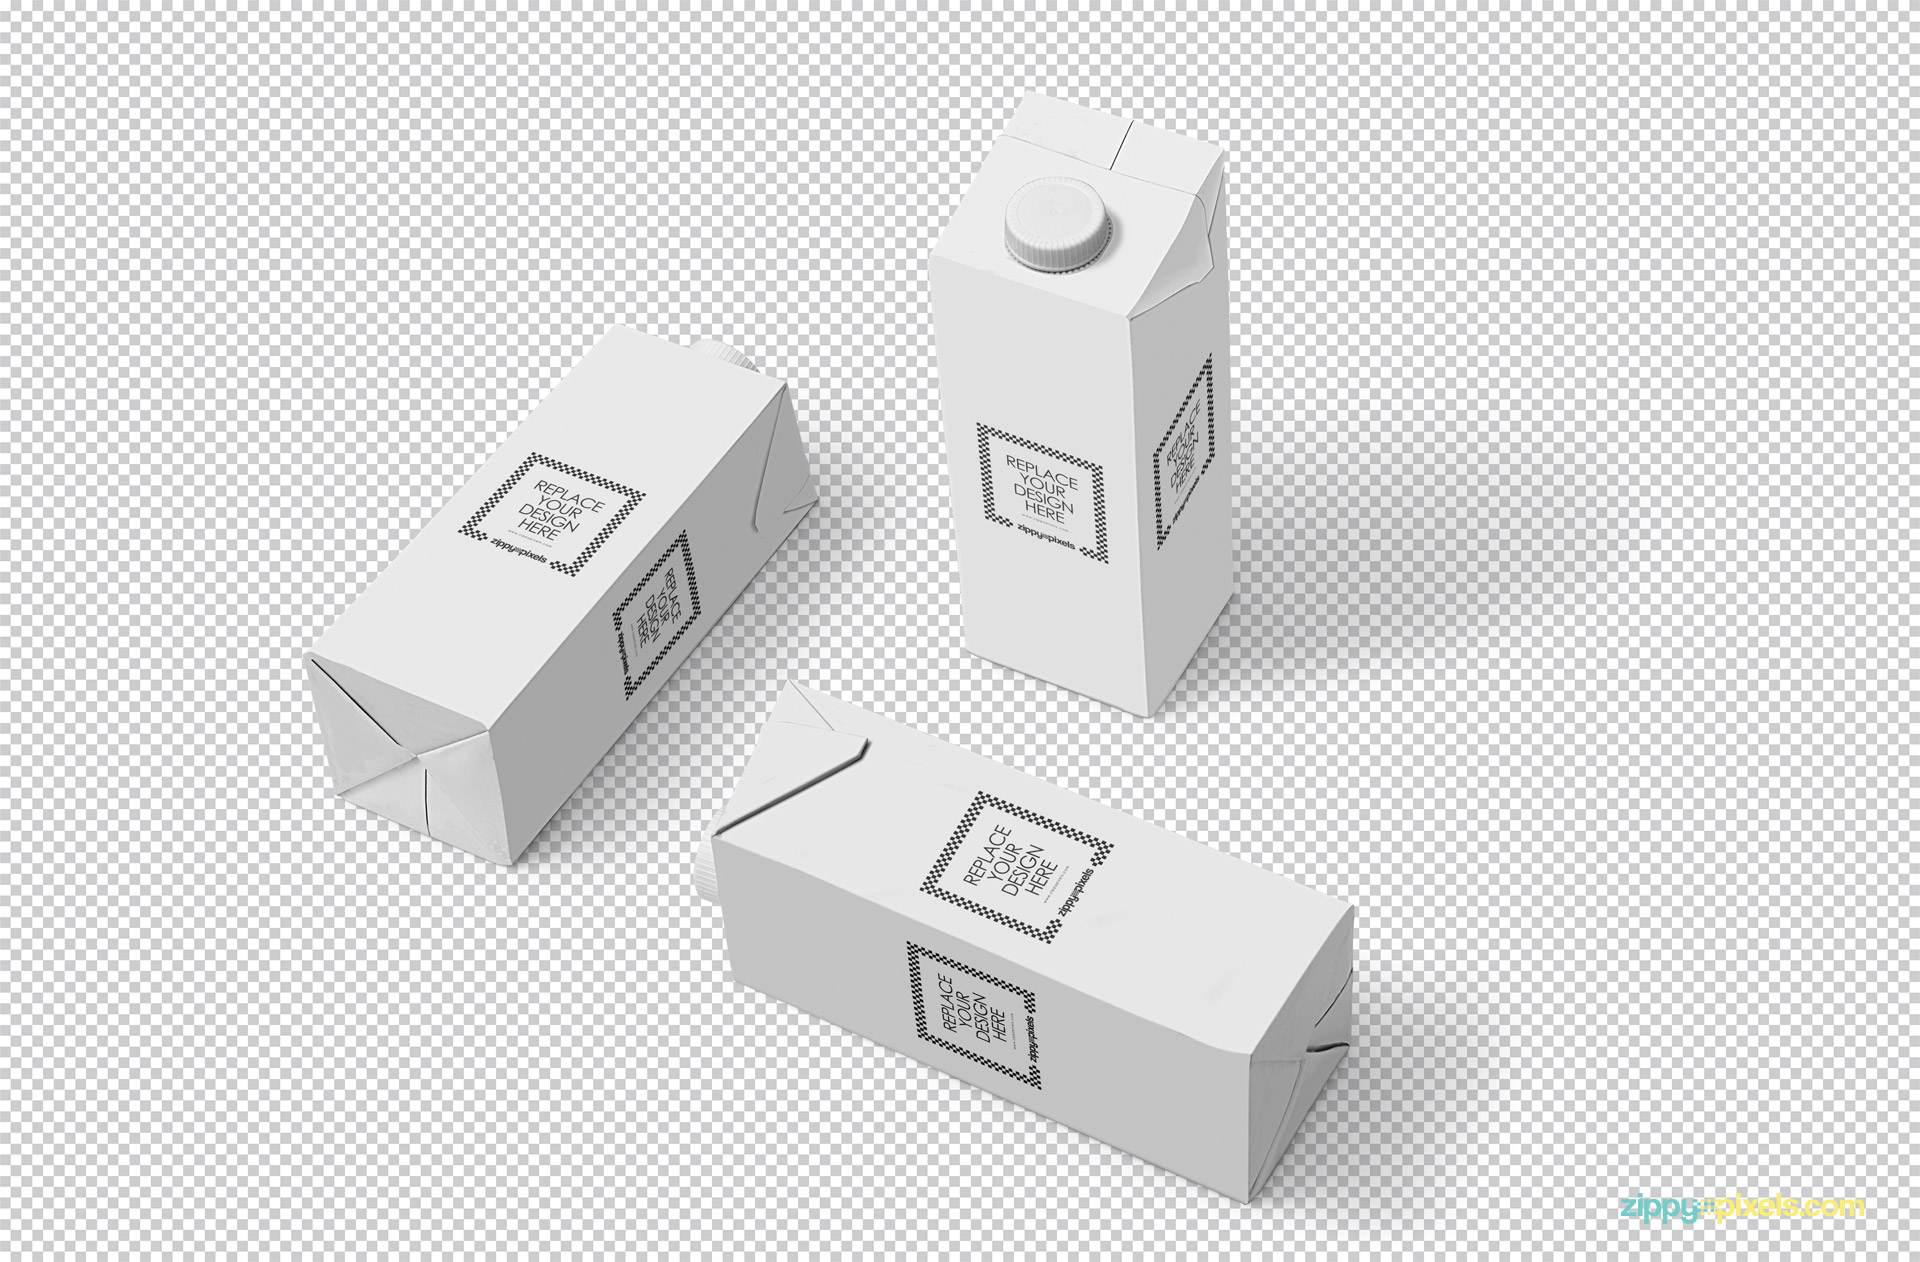 Three editable packaging boxes on greyscale background.